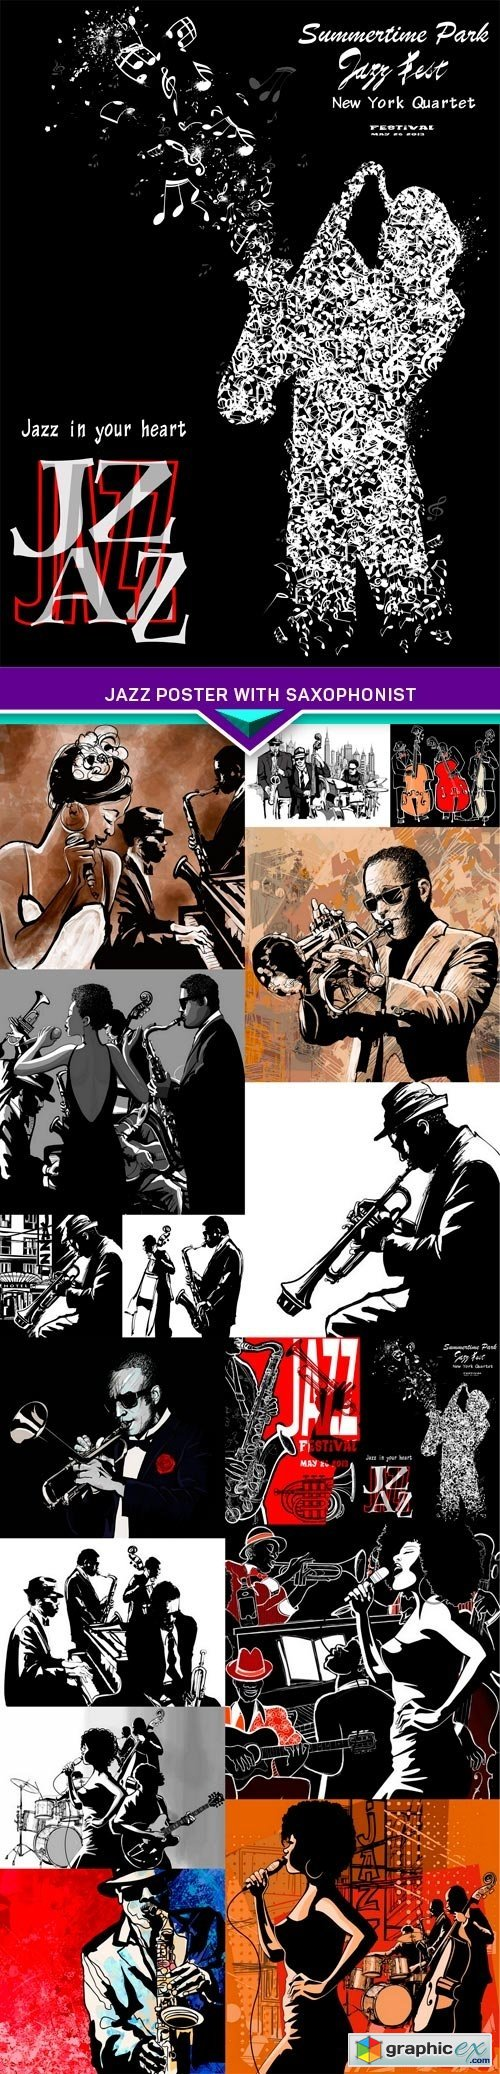 Jazz poster with saxophonist 16x EPS